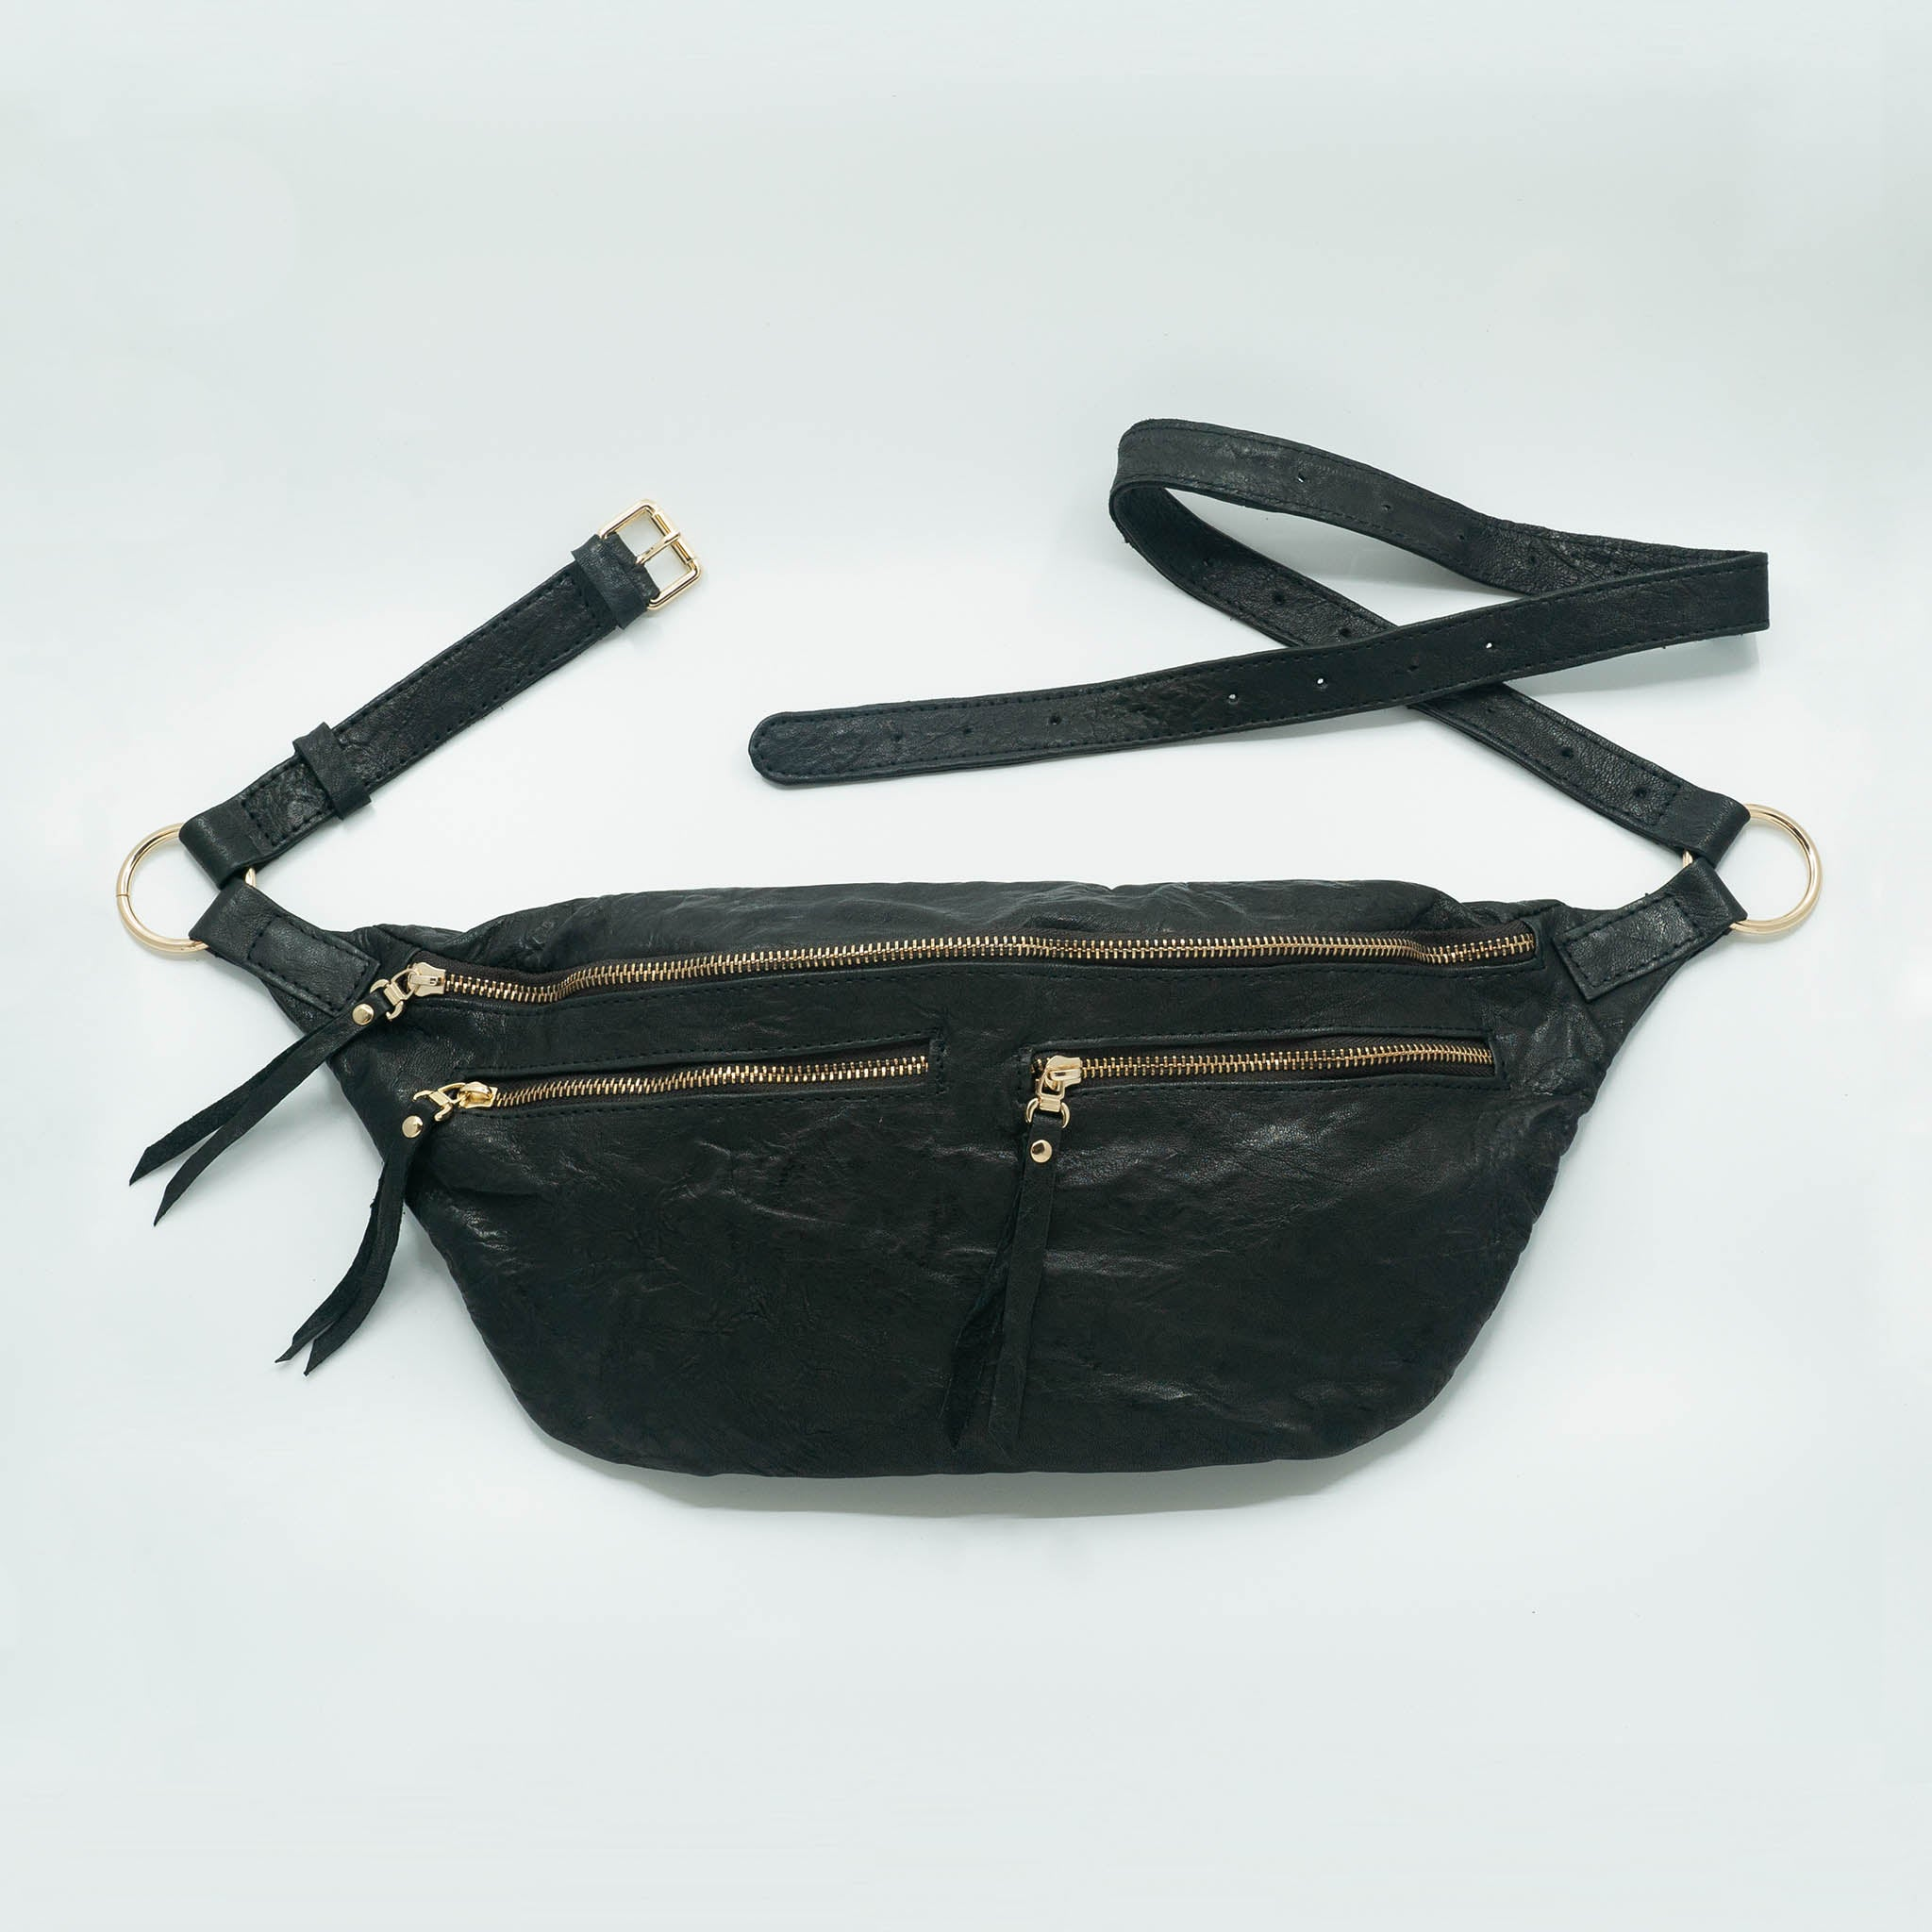 The Everywhere Bag #1 — Glazed, Textured Black Leather with Gold Hardware